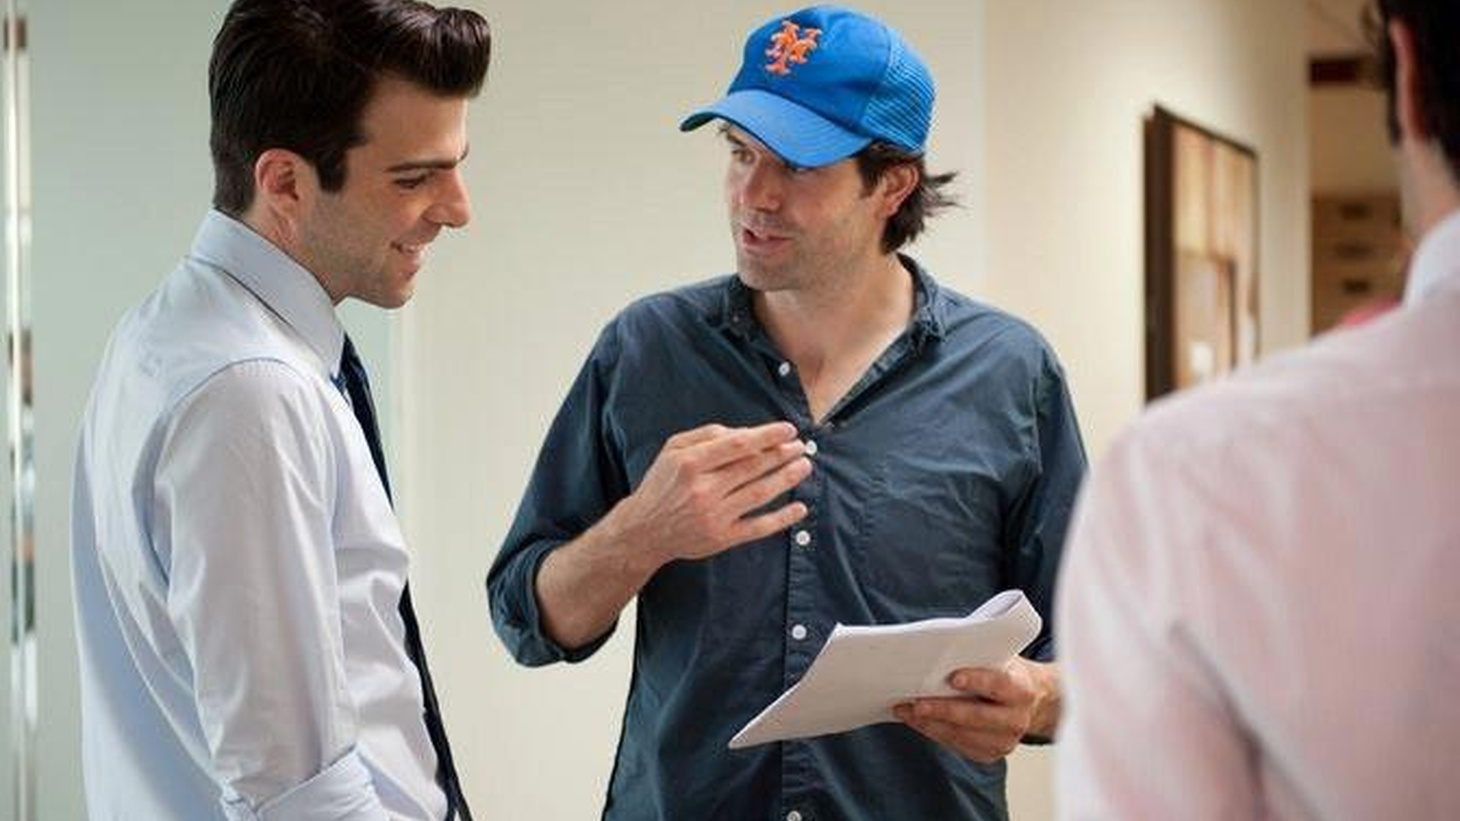 Writer and director J.C. Chandor's first film, Margin Call, was a hit at Sundance....